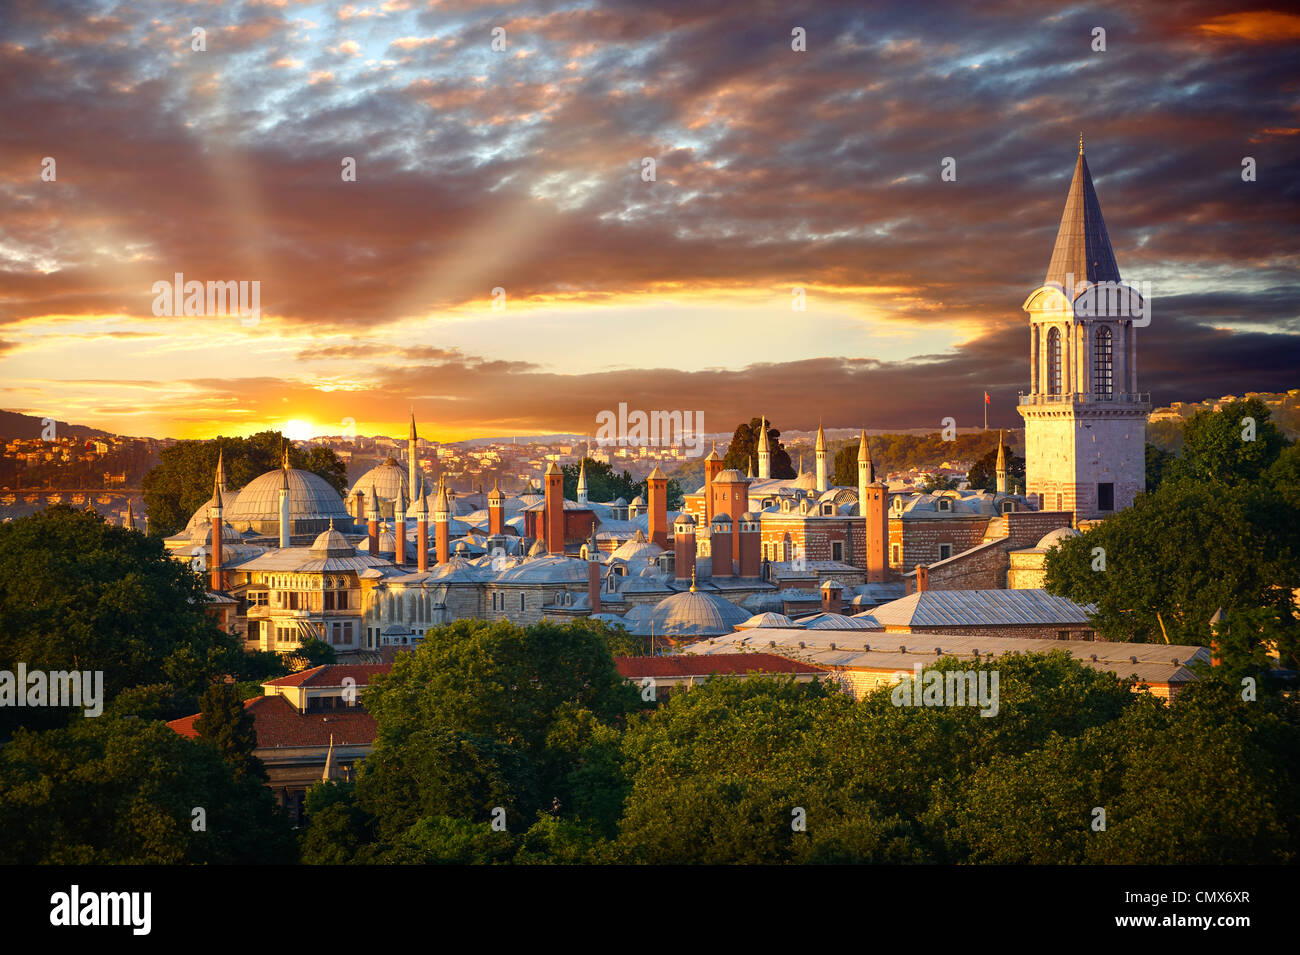 The Sultans Topkapi Palace at sunset, Istanbul, Turkey - Stock Image